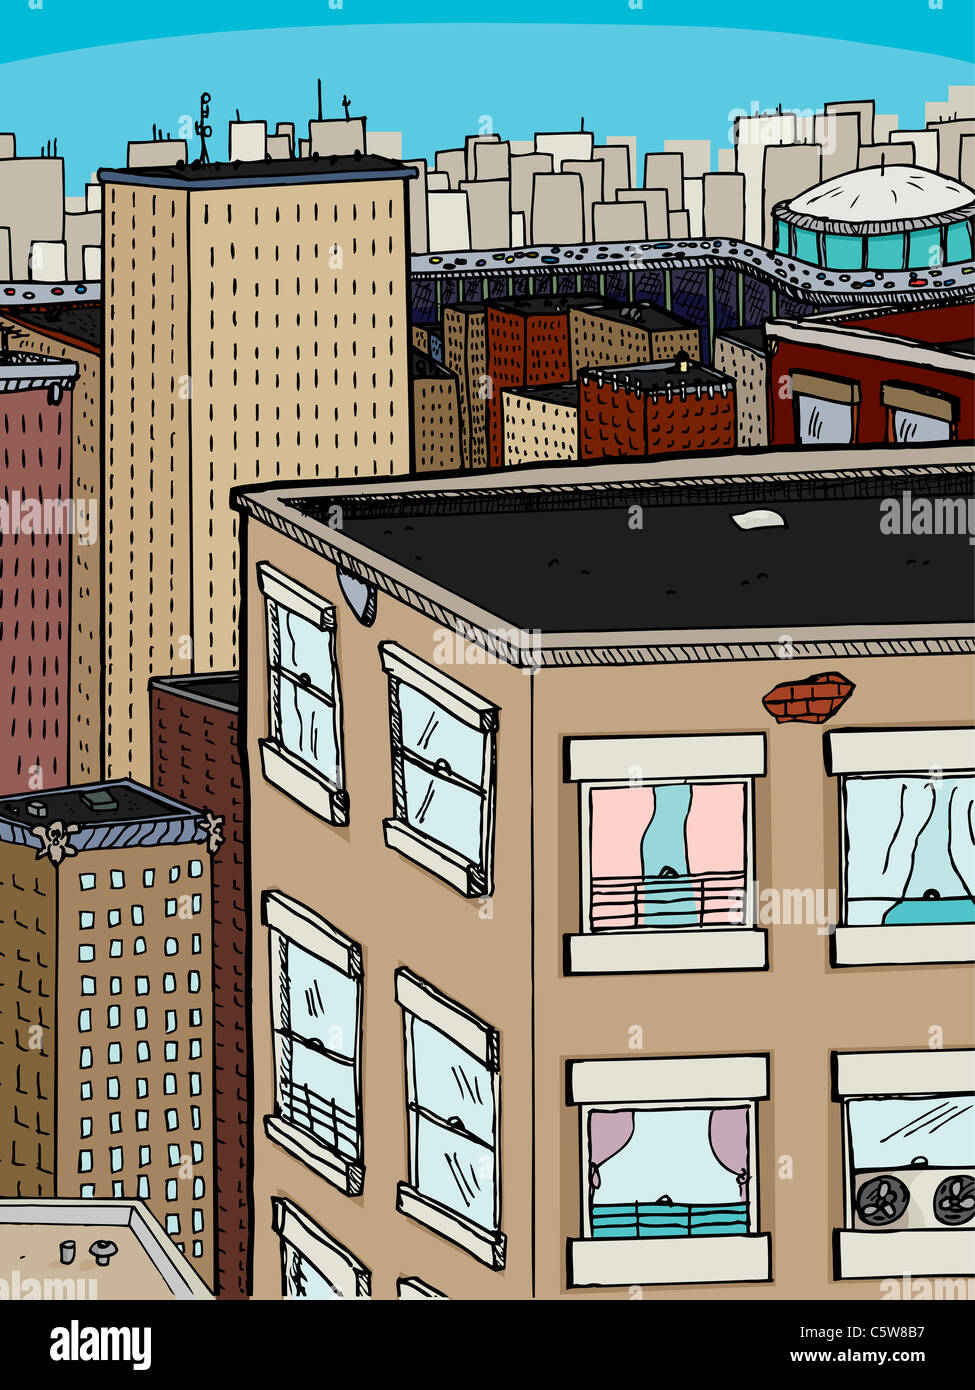 Dense urban scene with old apartments, offices and stadium with busy expressway - Stock Image